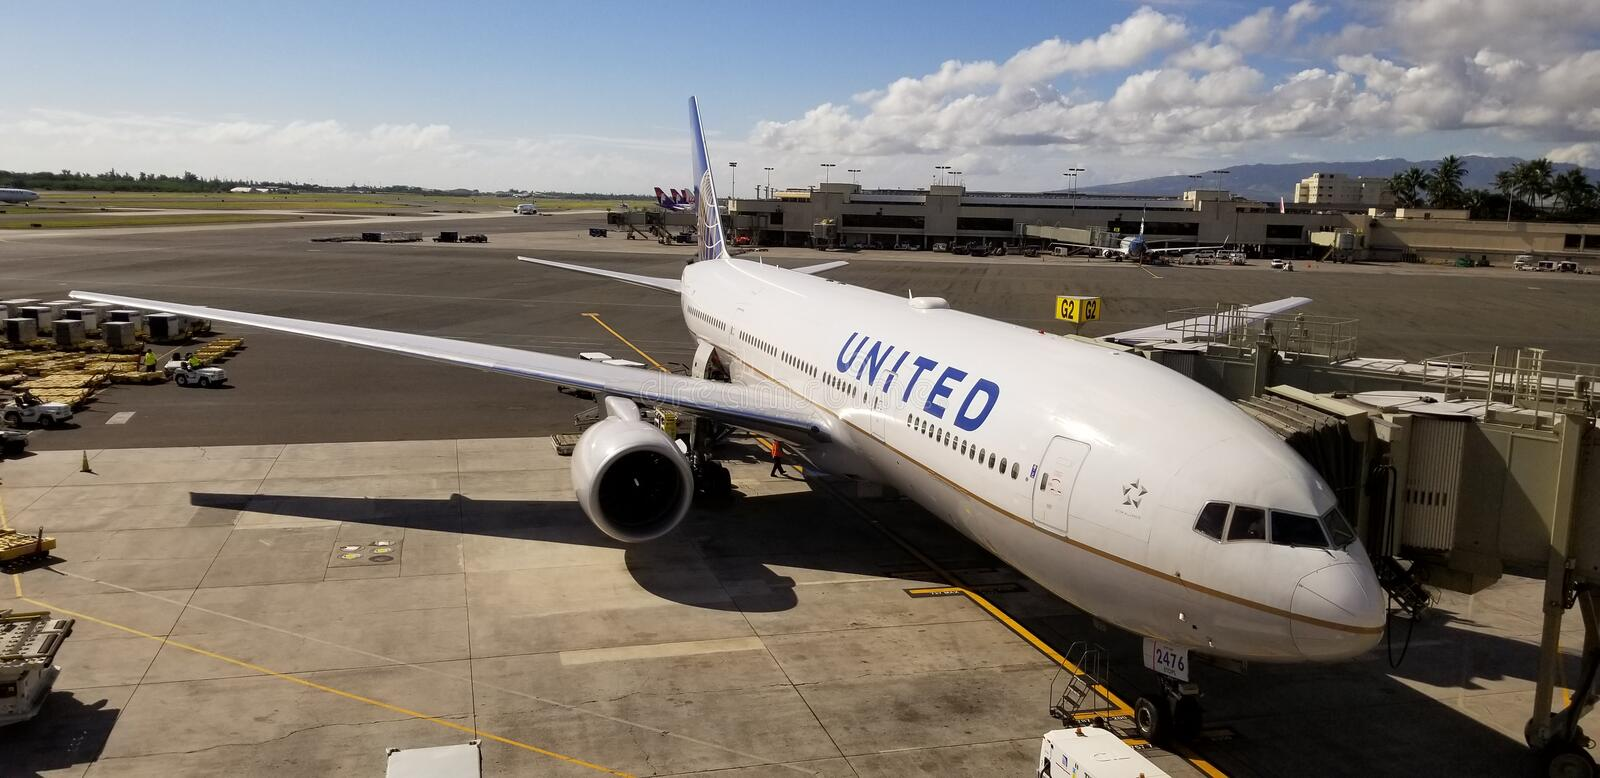 Avion d'United Airlines sur le terminal images stock